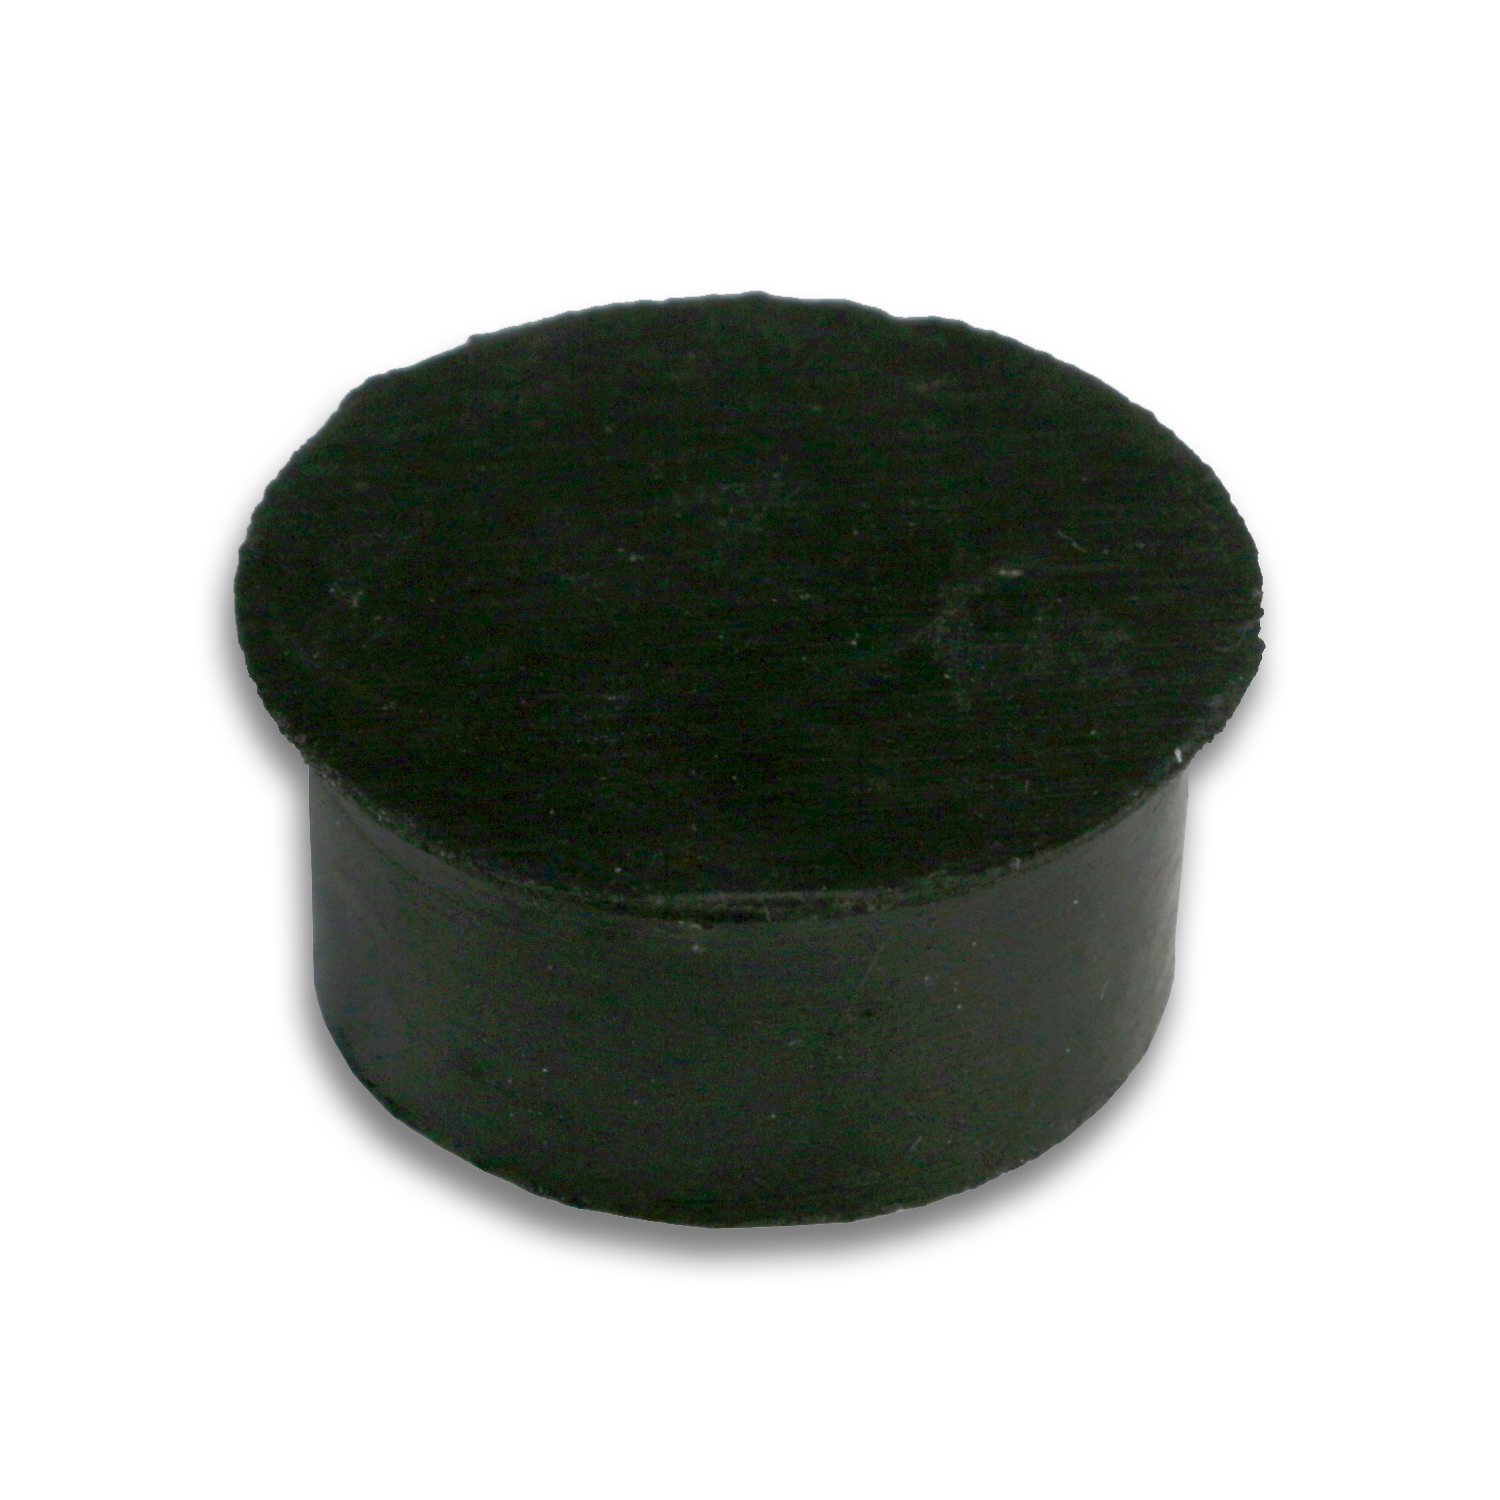 "7/8"" Entry Boot Cushion Plug, bag of 10"